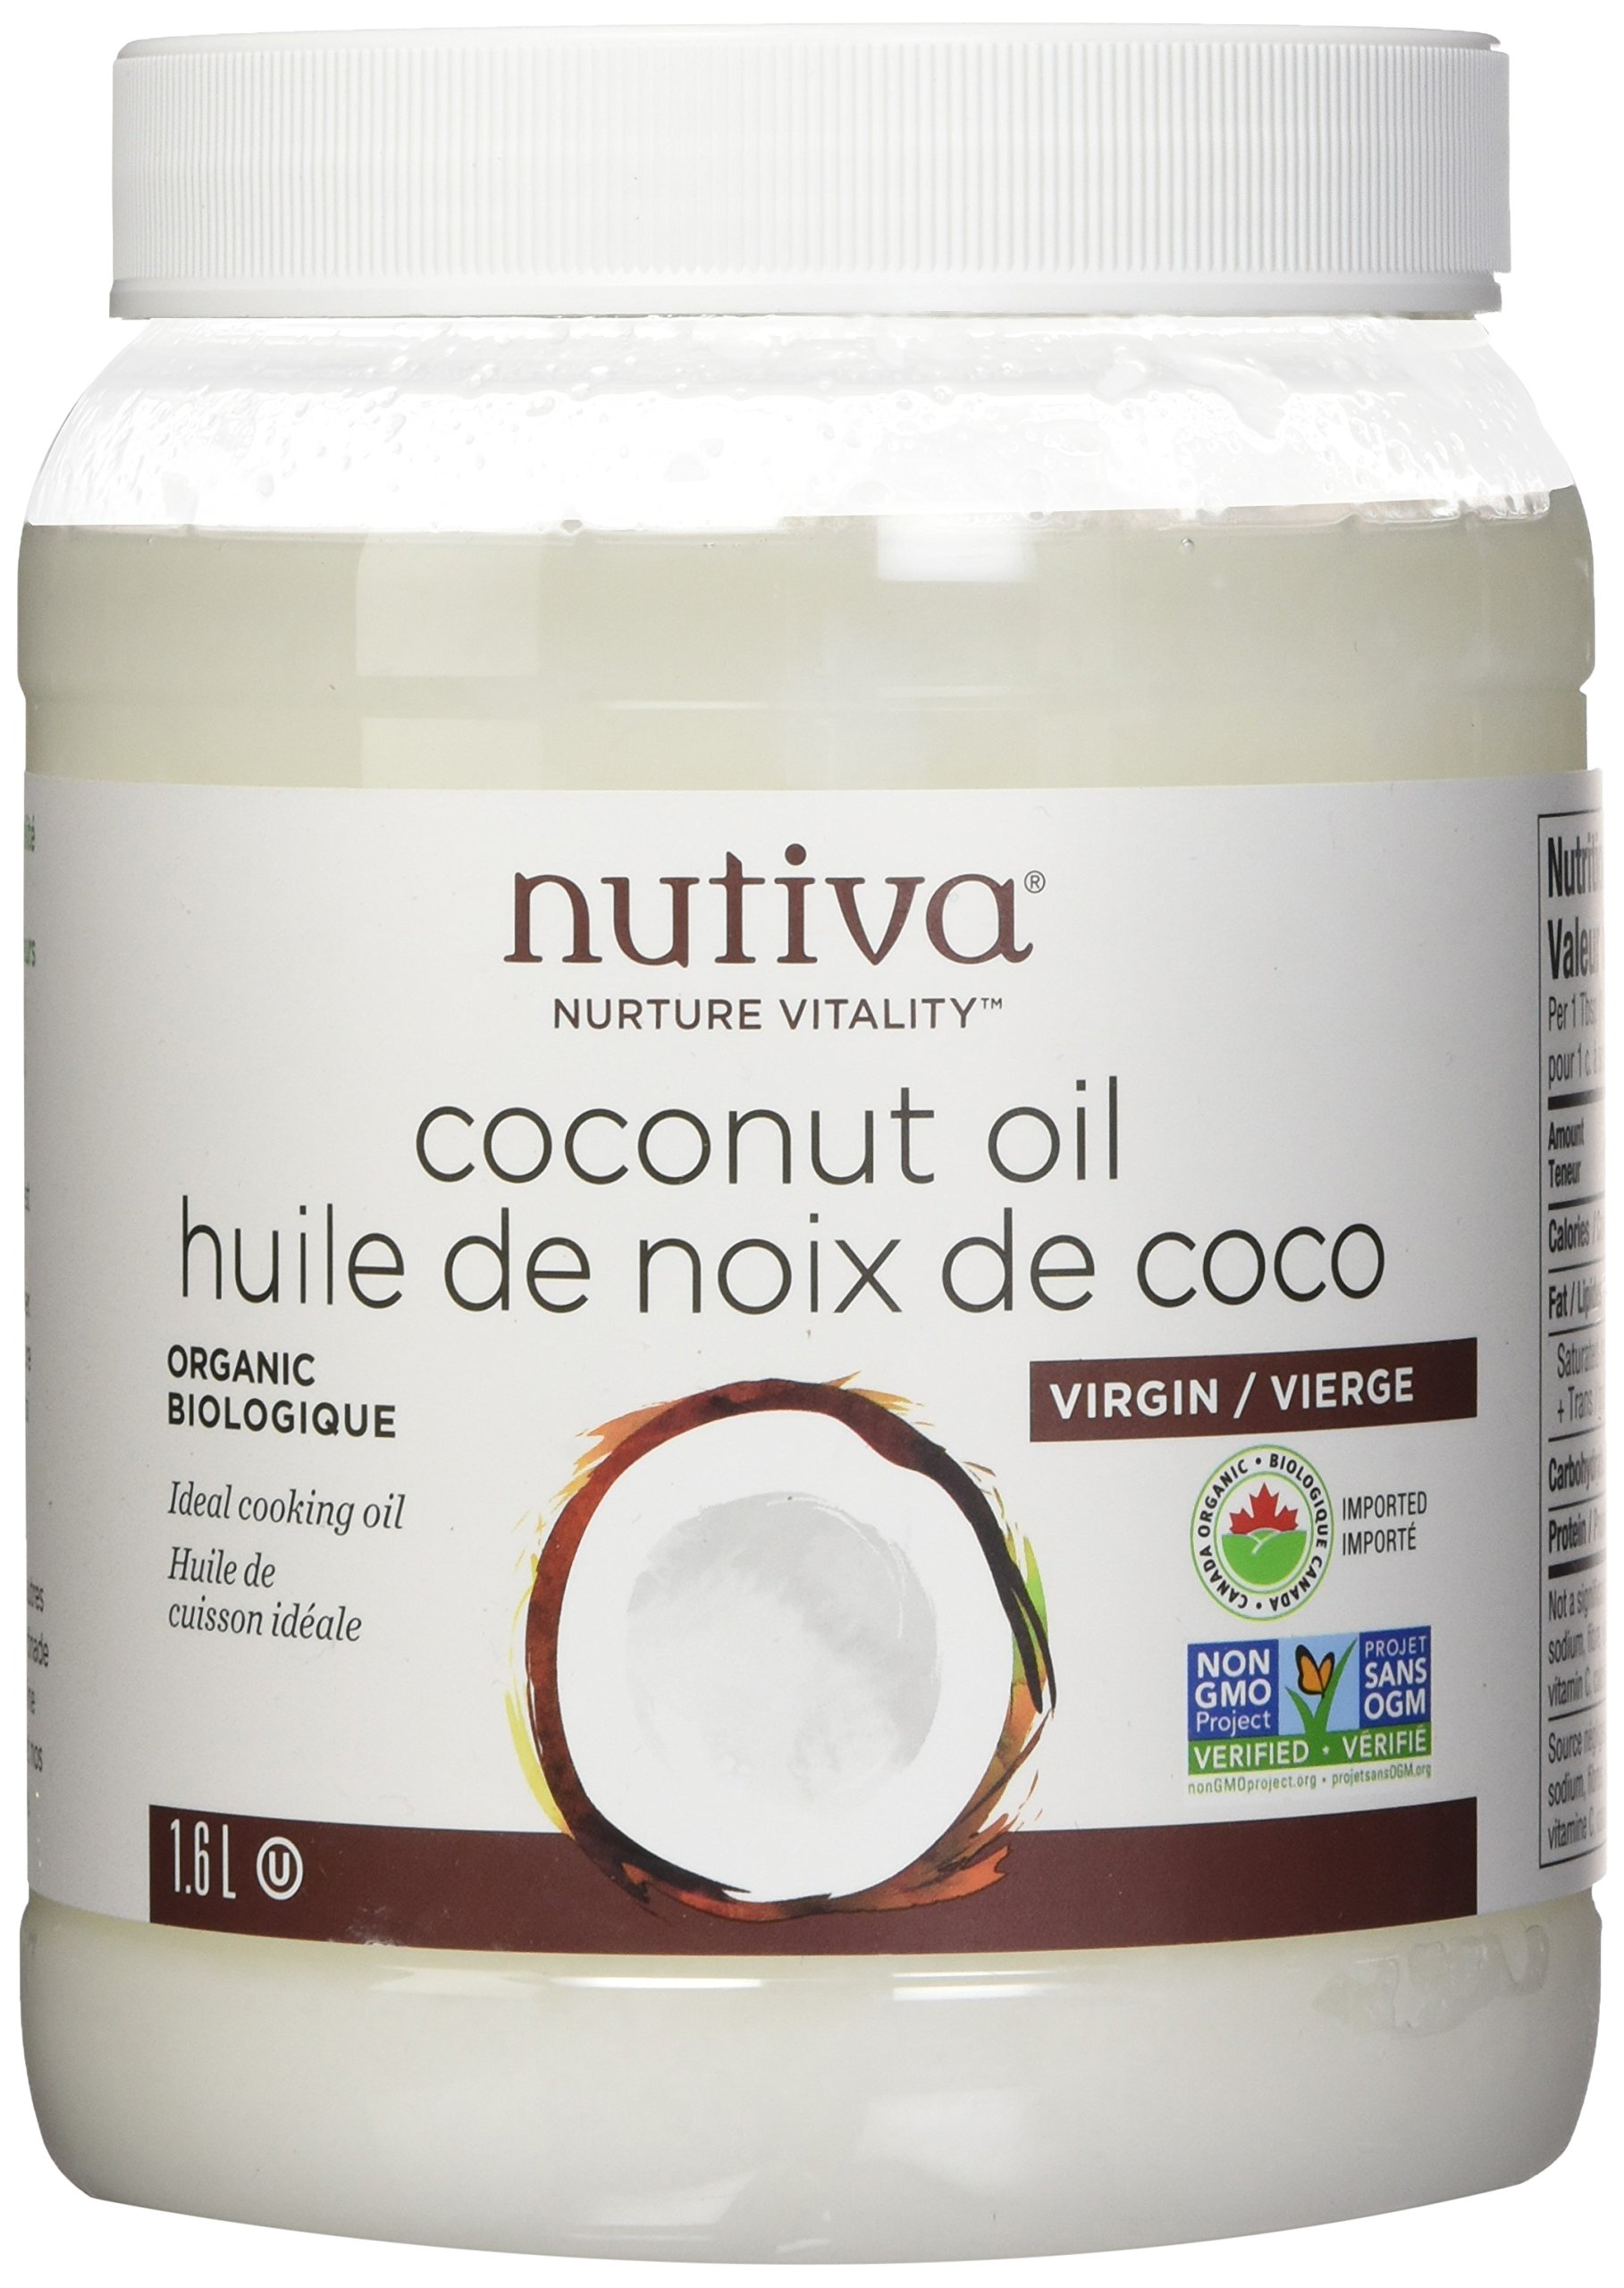 Nutiva Organic, Cold-Pressed, Unrefined, Virgin Coconut Oil from Fresh, non-GMO, Sustainably Farmed Coconuts, 54 Fluid Ounces